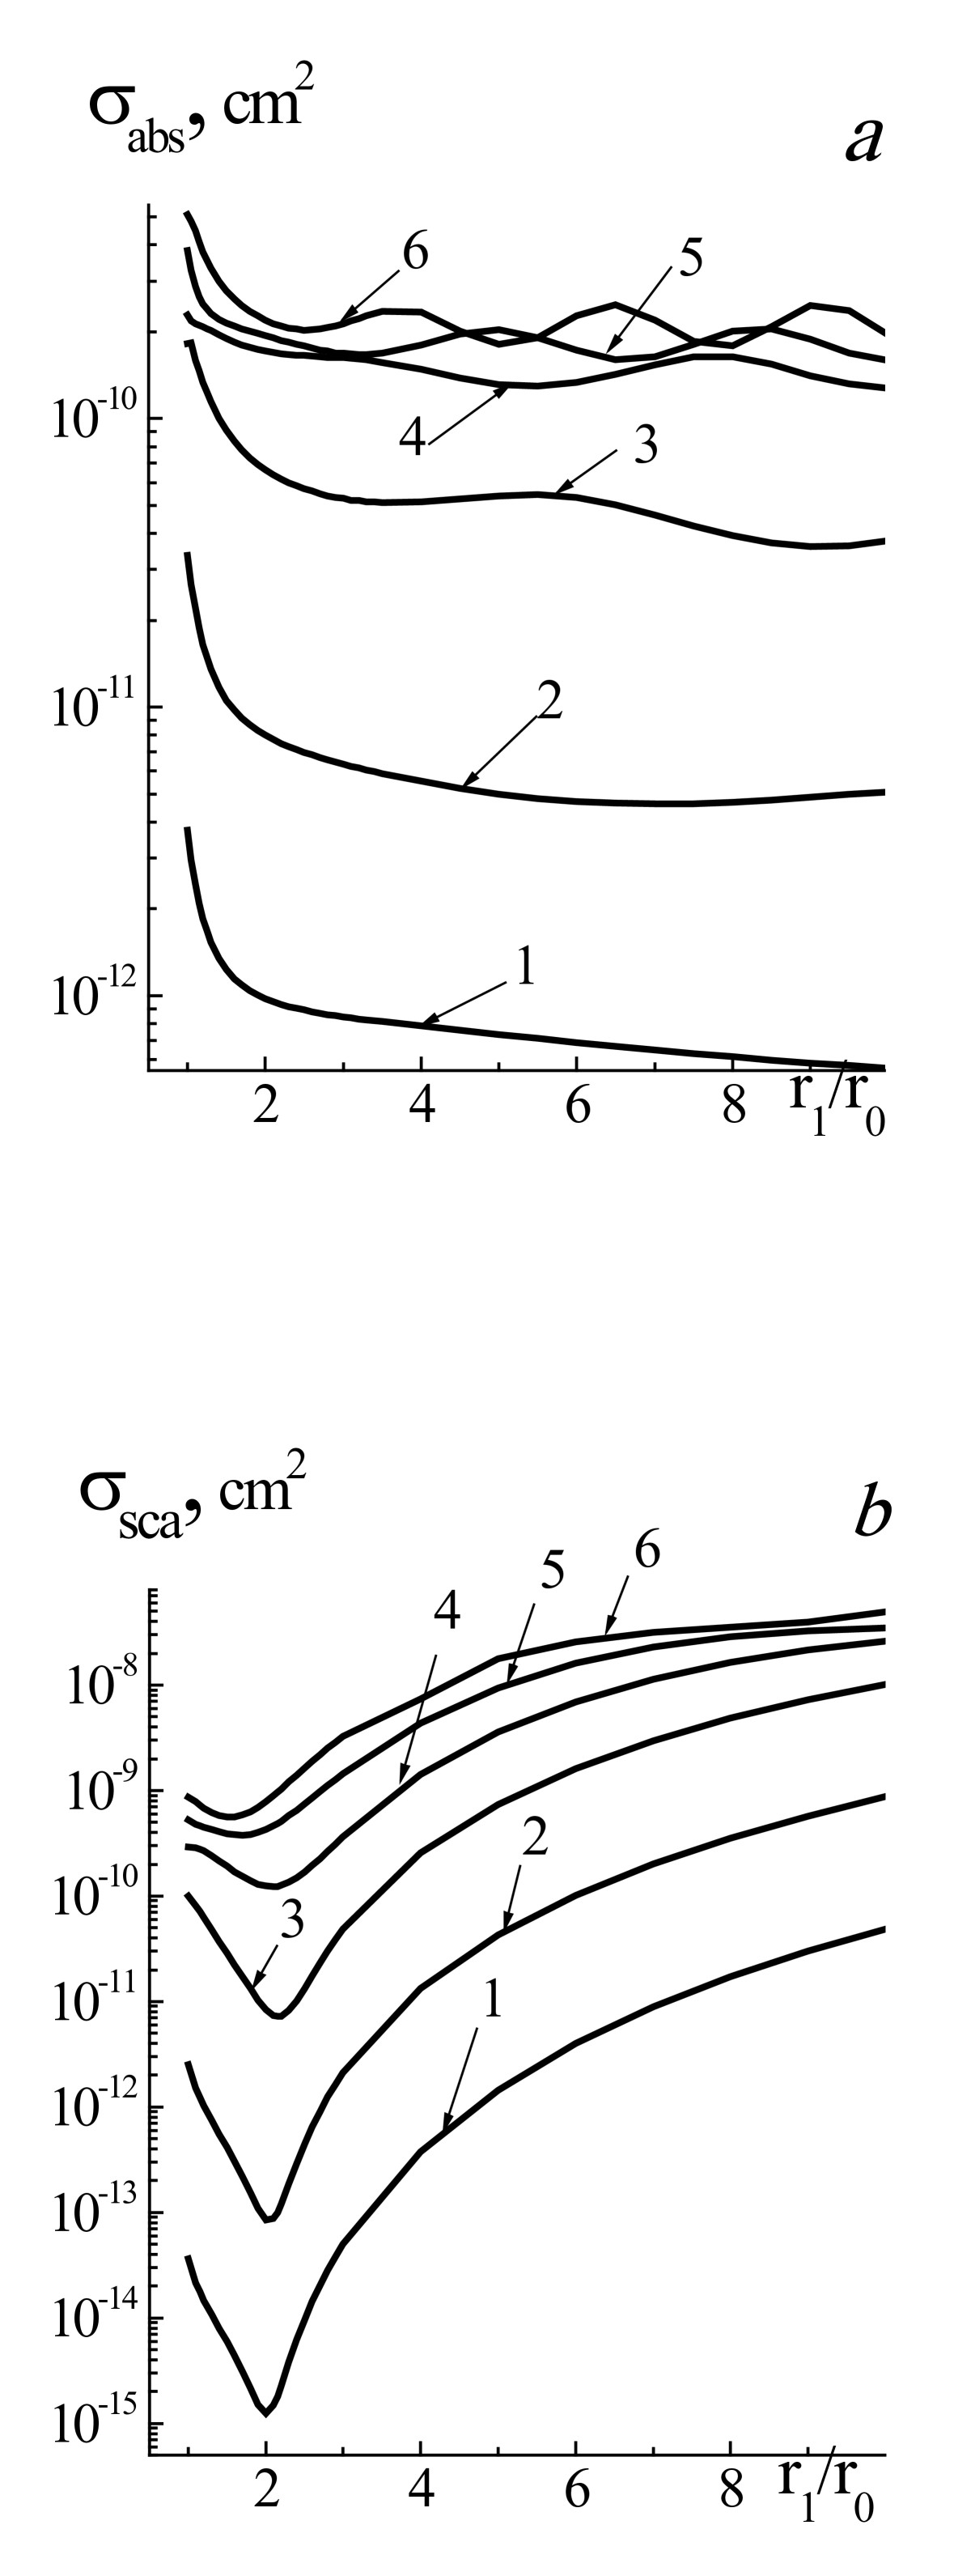 http://static-content.springer.com/image/art%3A10.1186%2F1556-276X-6-448/MediaObjects/11671_2011_Article_561_Fig5_HTML.jpg